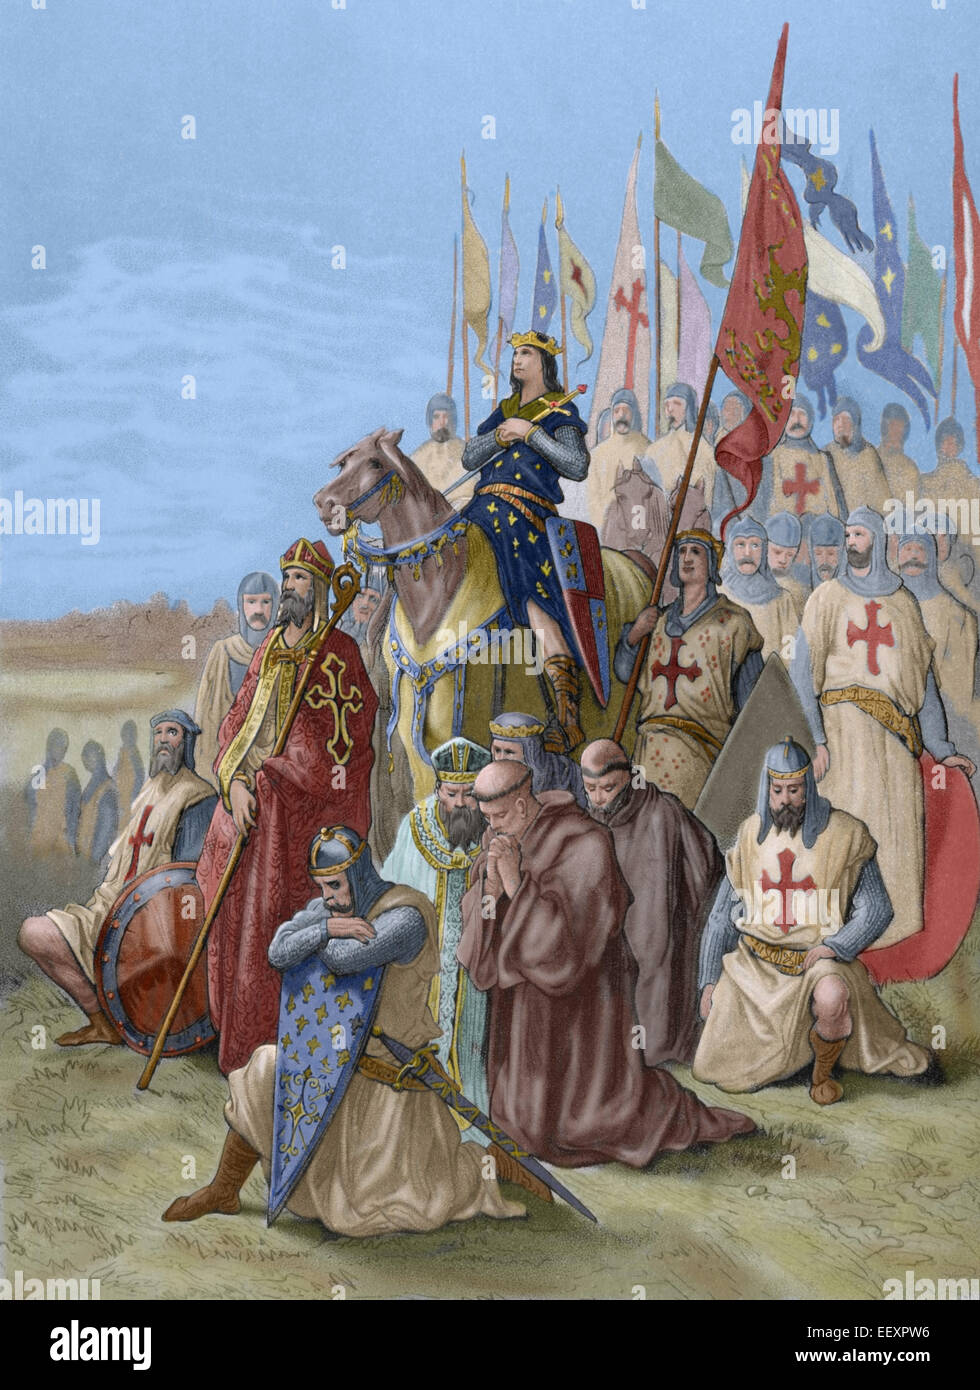 Seventh Crusade (1248-1254). Conquest of Damietta (June 7, 1249). Saint  Louis (1214-1270) conquest the city and returned him to the Muslims.